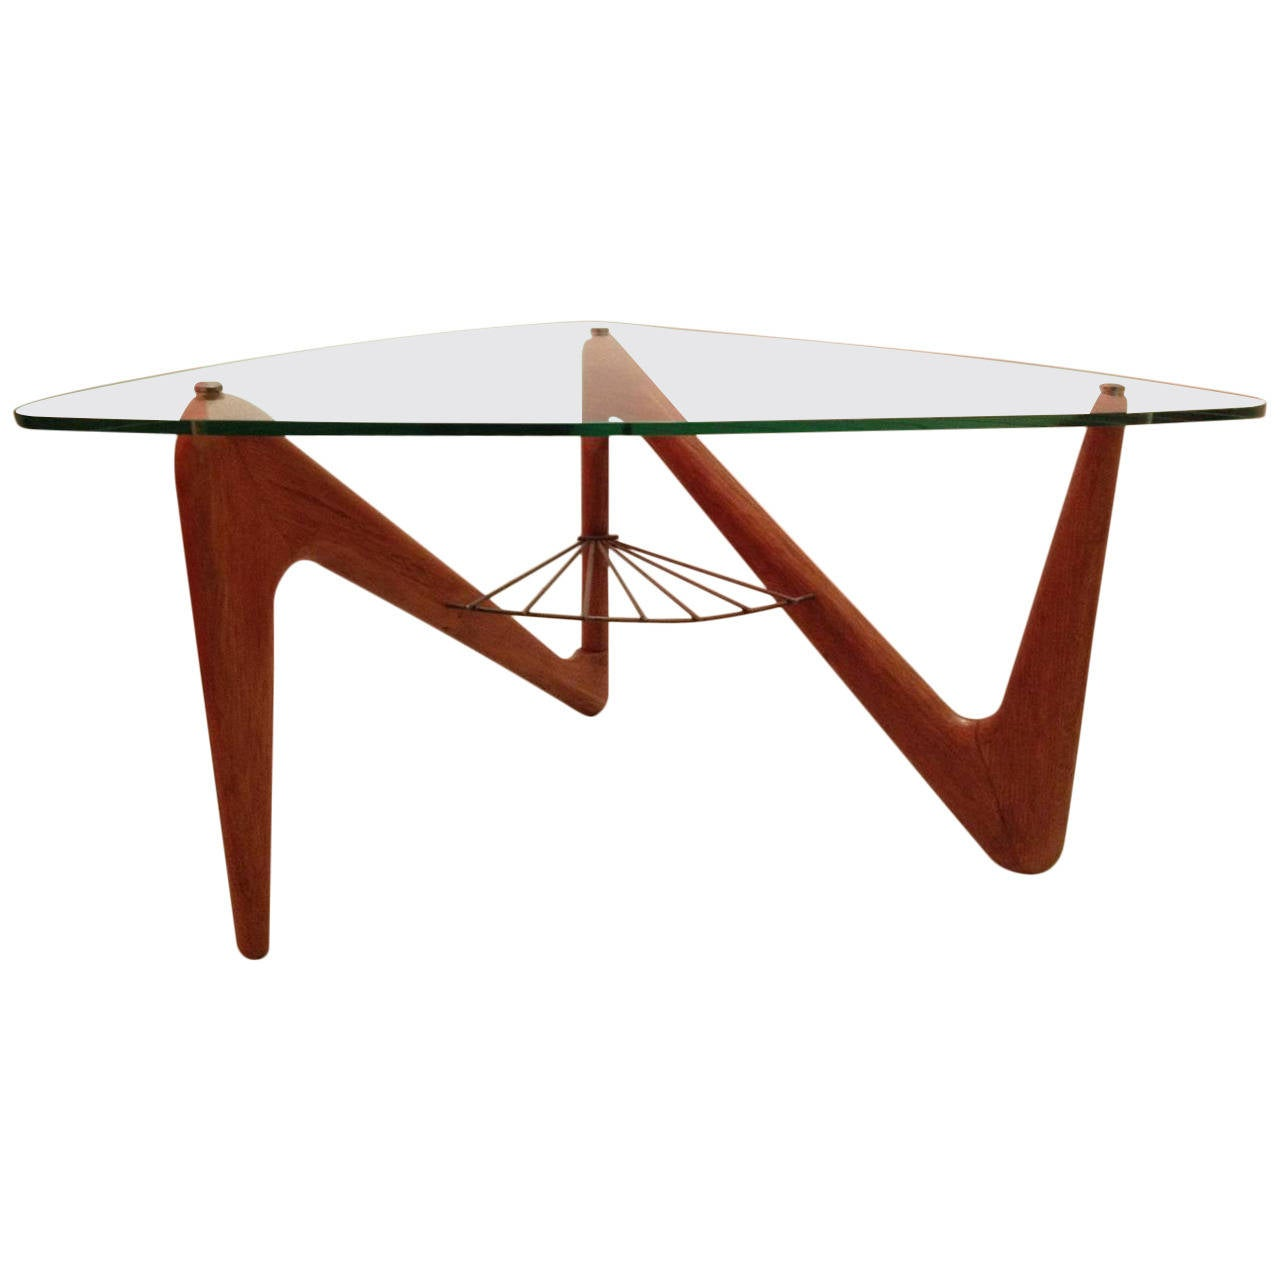 Table Top 1955: Louis Sognot Coffee Table, France, 1955 At 1stdibs